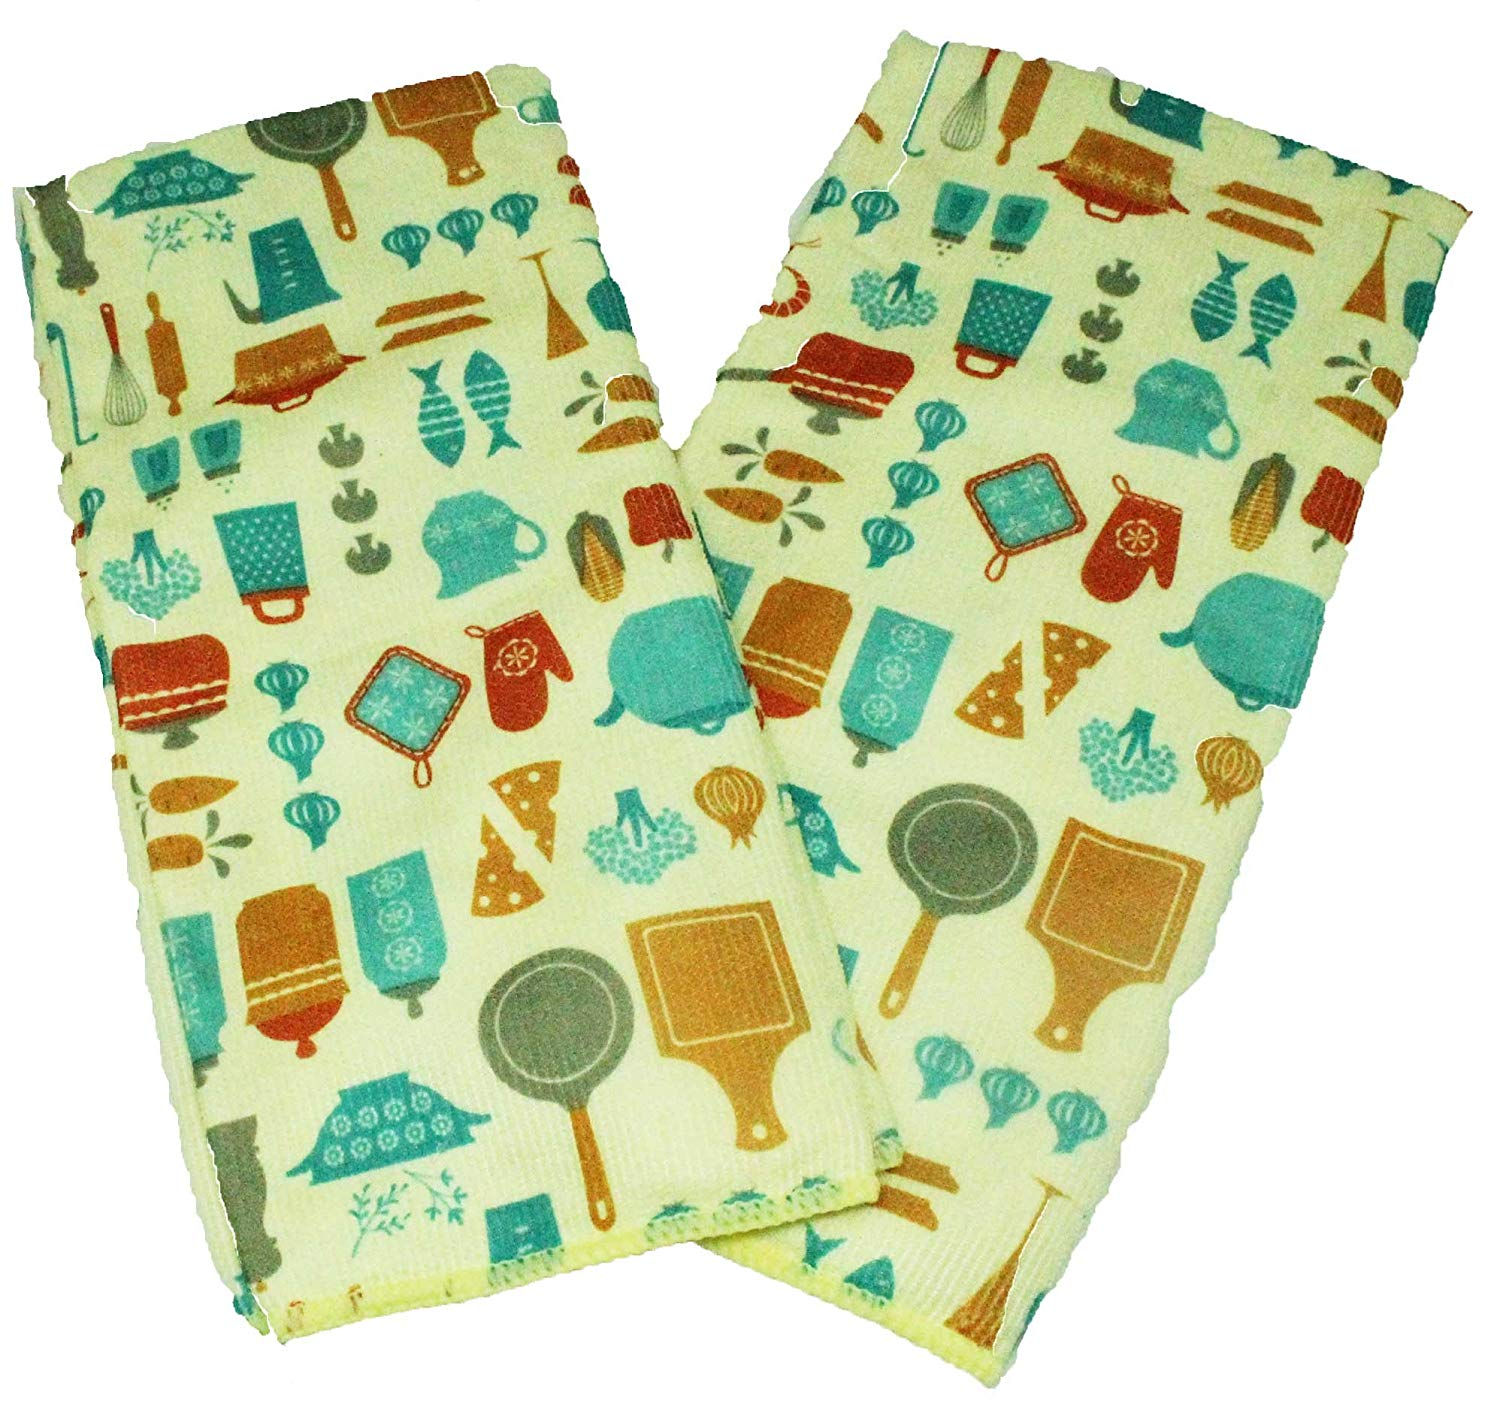 Set of 2 Yellow and Teal Kitchen Dish Towels - Microfiber Dish Towels Gift Set with Baking and Cooking Utensils Design - Comes in Organza Gift Bag